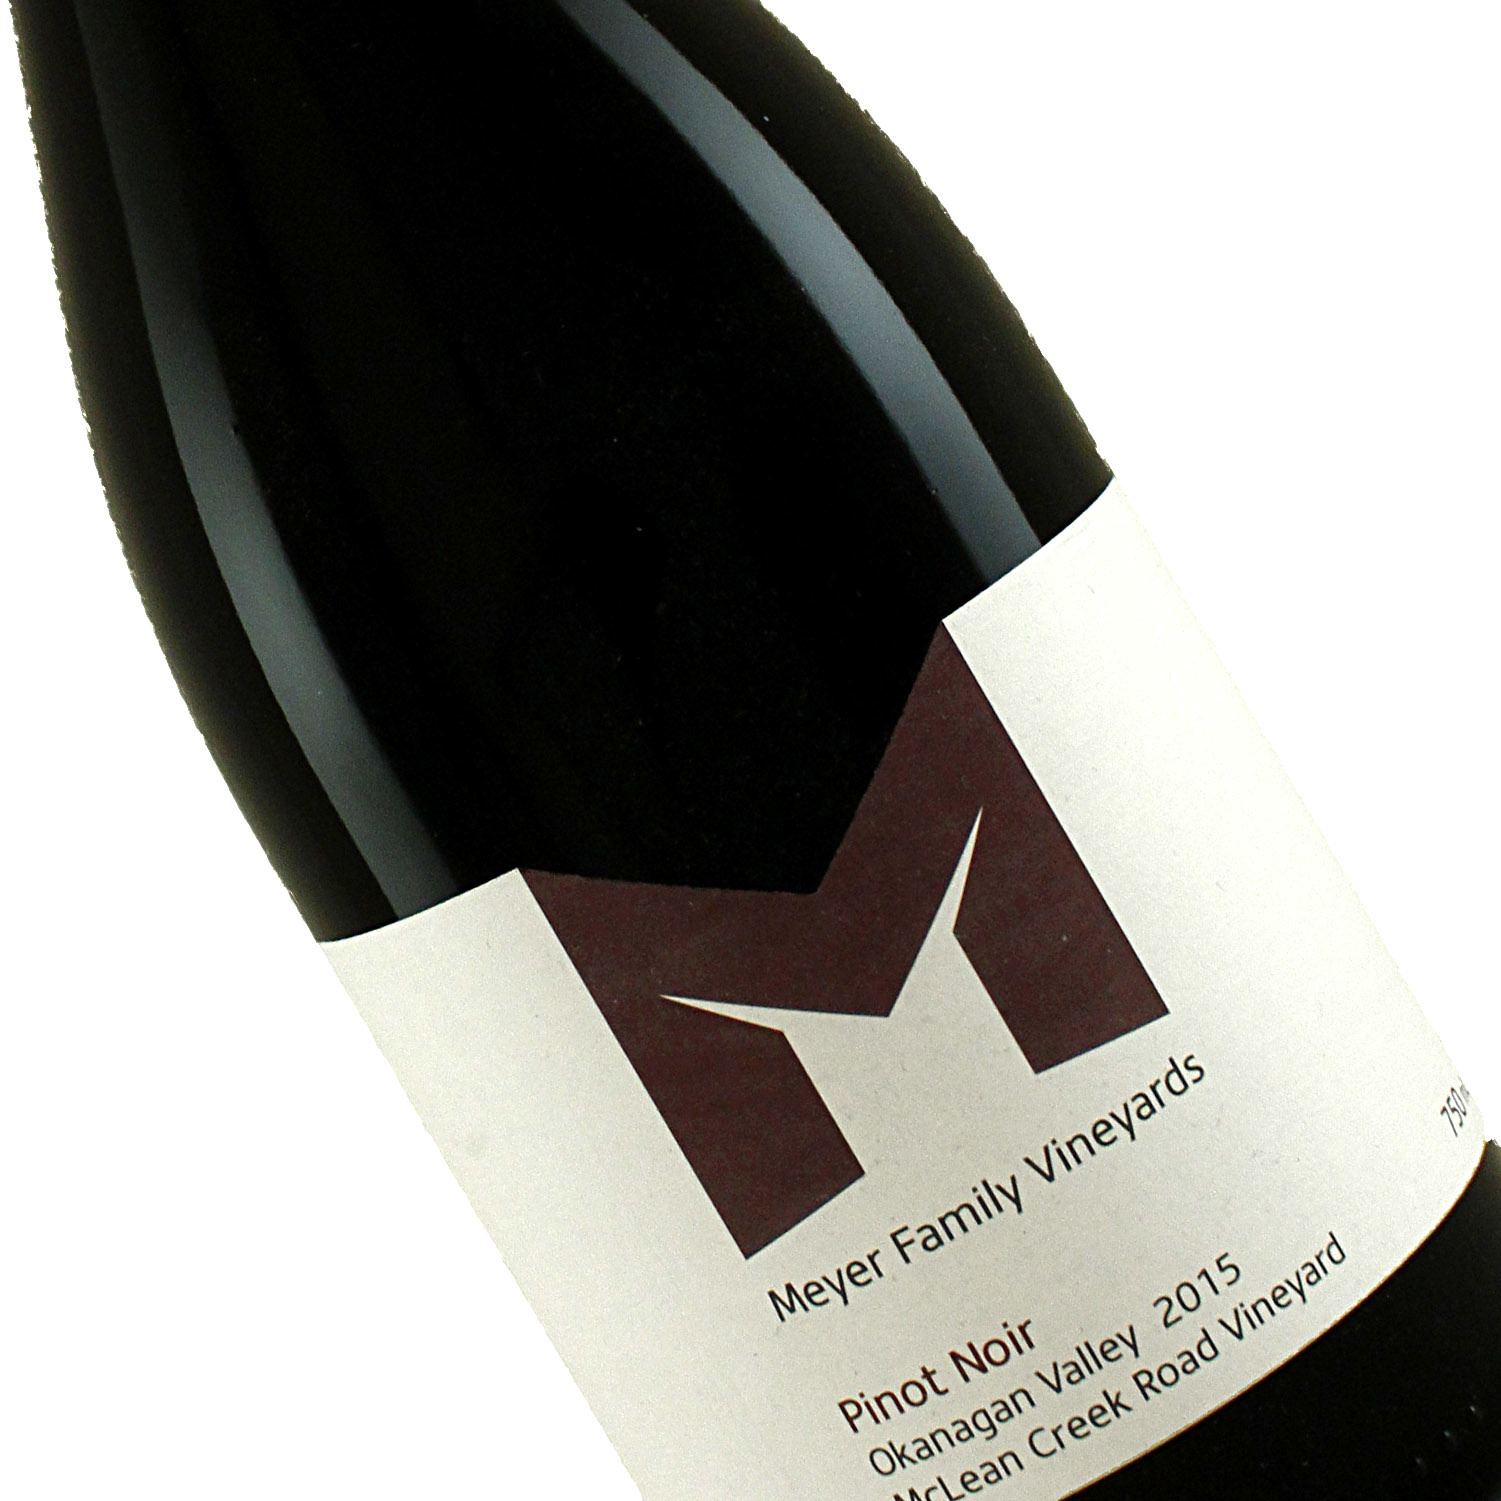 Meyer Family Vineyards 2015 Pinot Noir Okanagan Valley, Canada